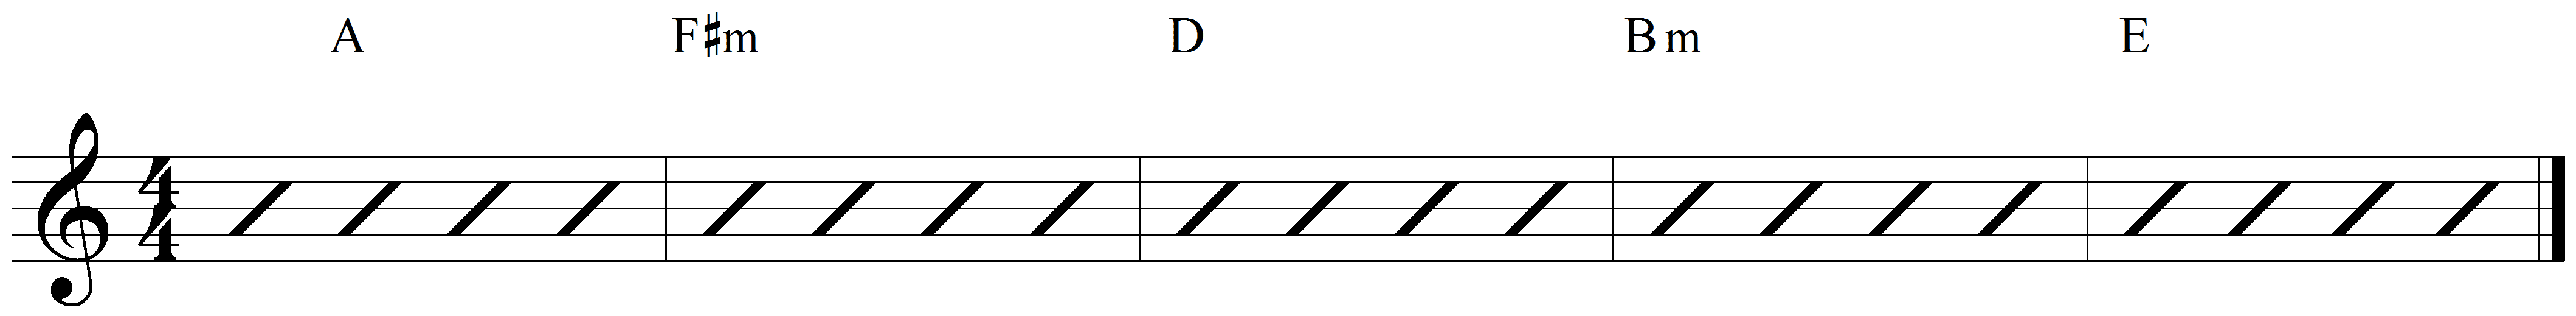 Key of A chord pattern example